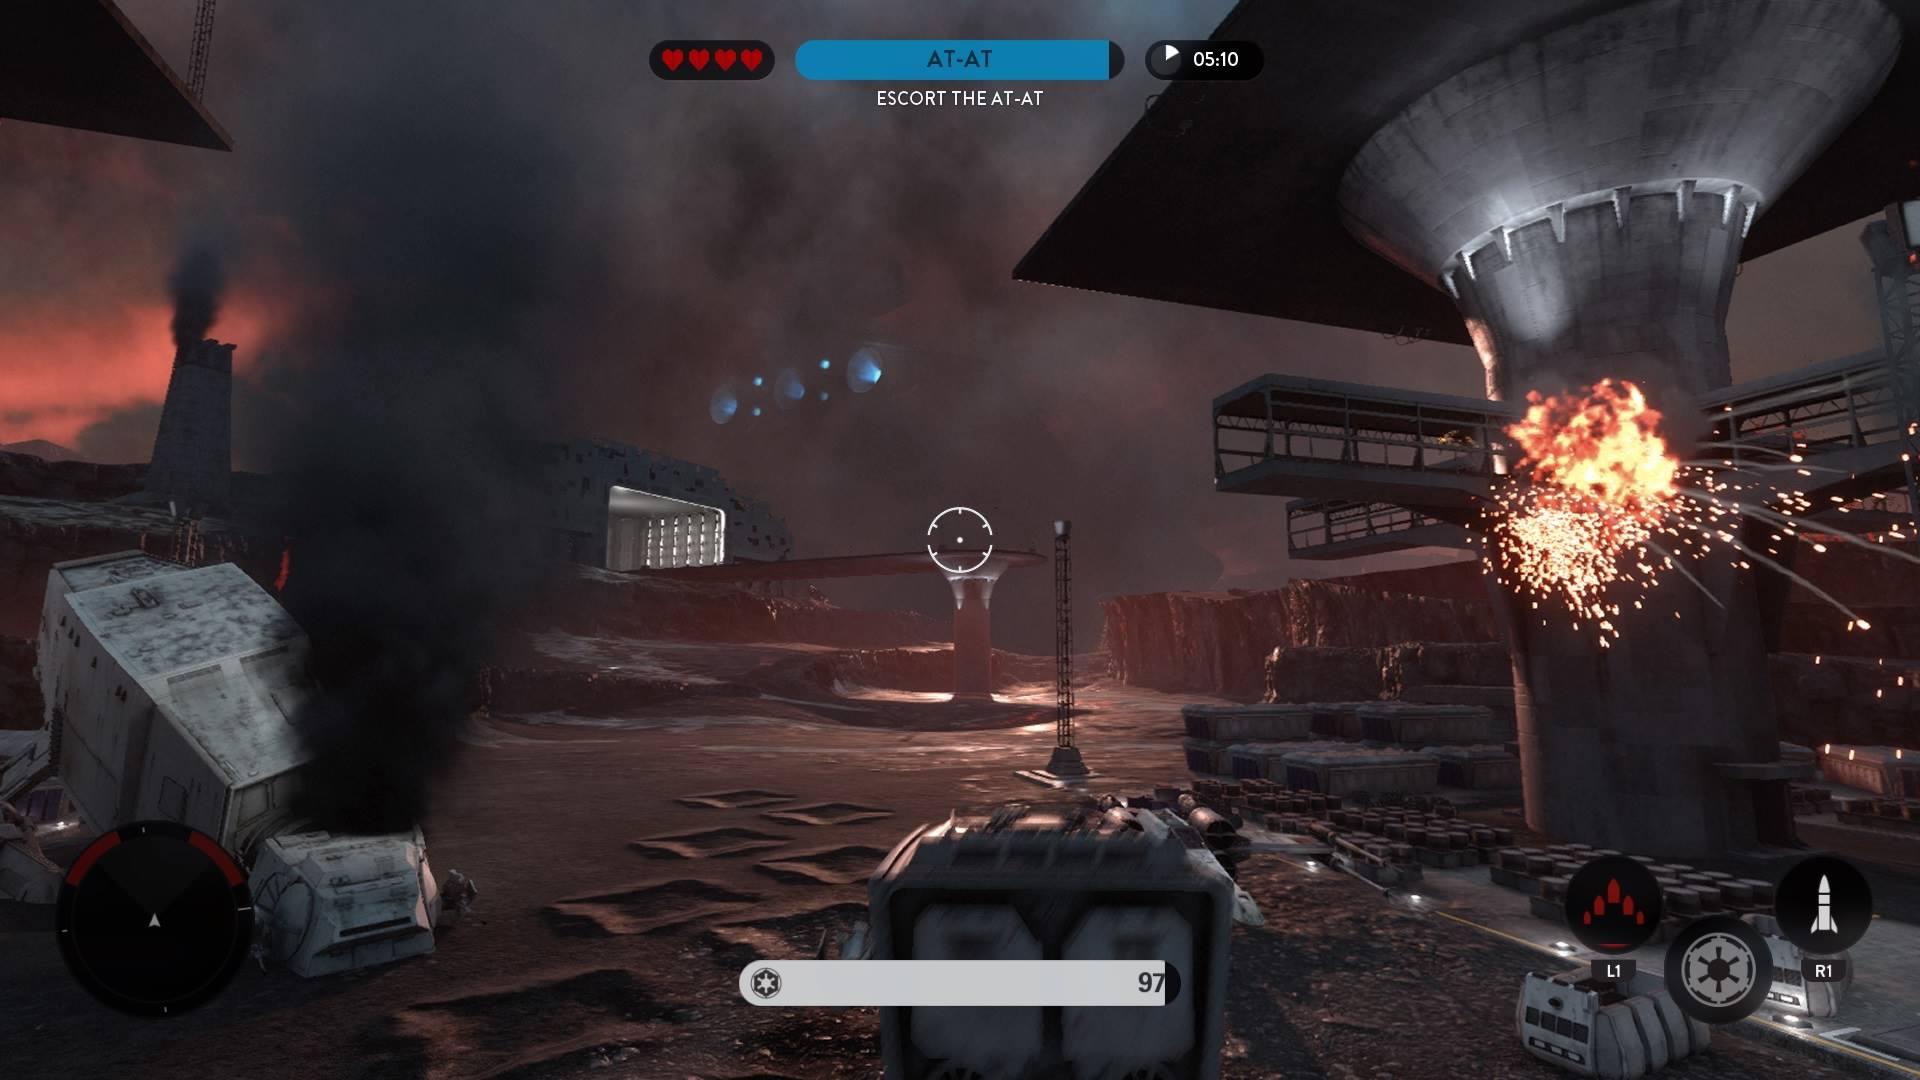 In the midst of a training mission in Star Wars Battlefront.